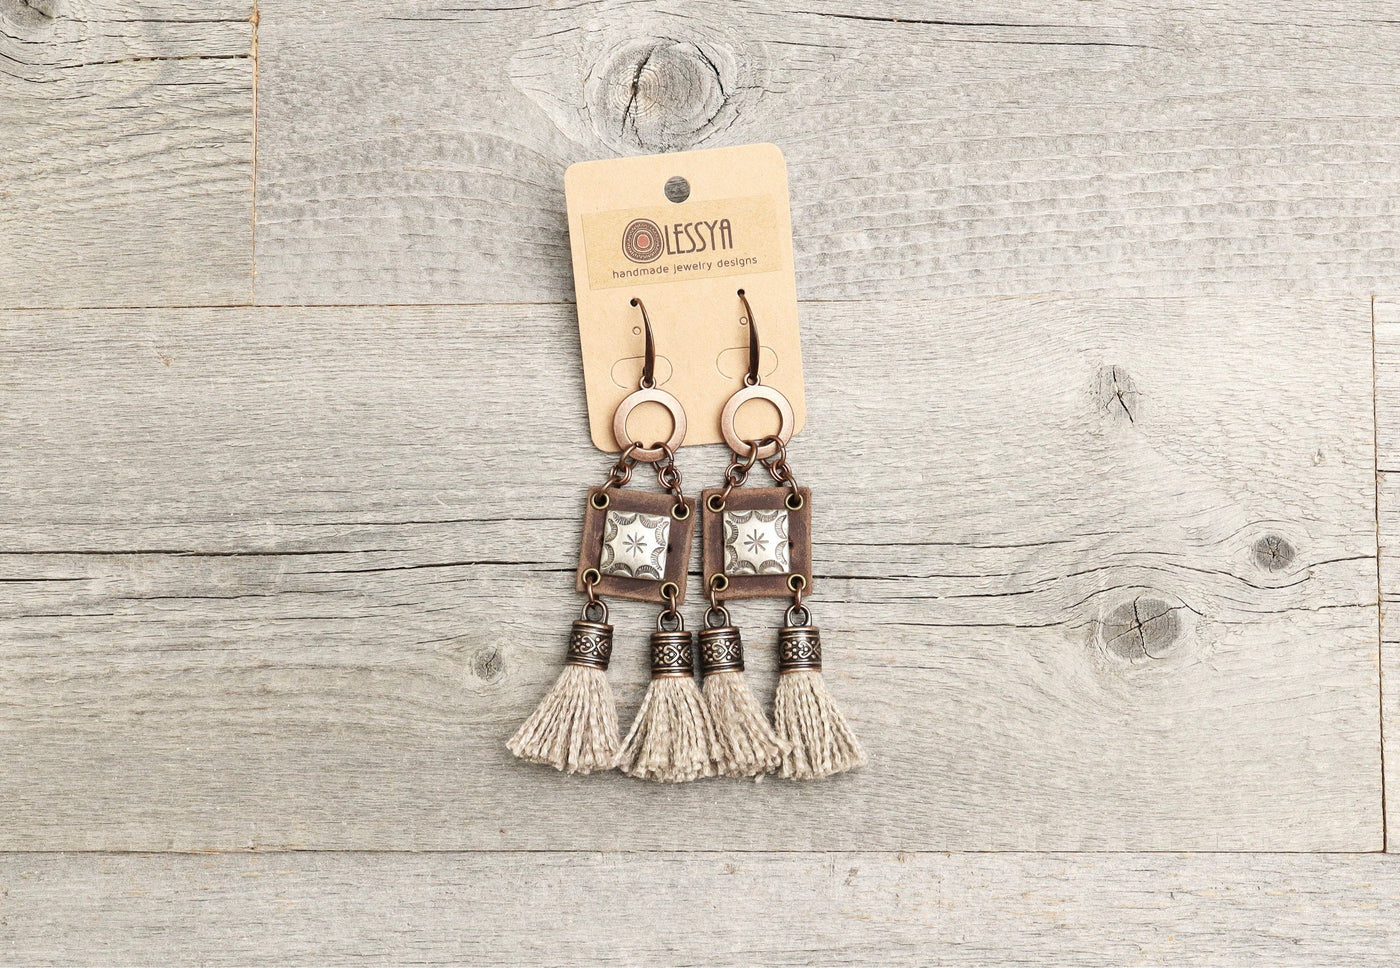 Viking Tribal Ethnic Tassel Leather Earrings - Native Rustic Hippie Unique Eclectic Boho Gypsy Metal Vintage Bohemian Handmade Jewelry Set